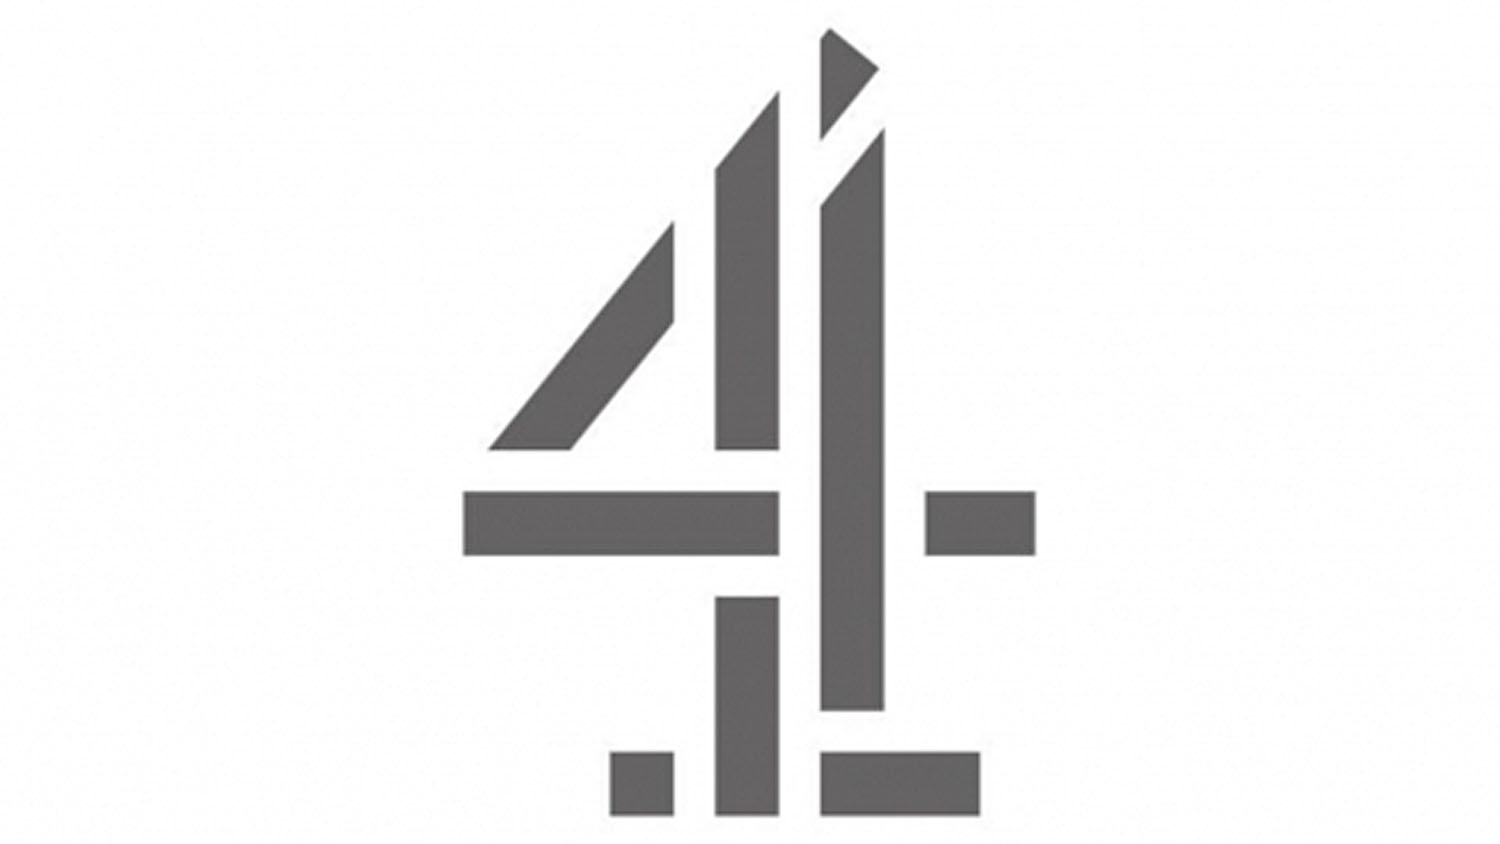 Channel 4 leads factual slate with Stuart Lubbock doc